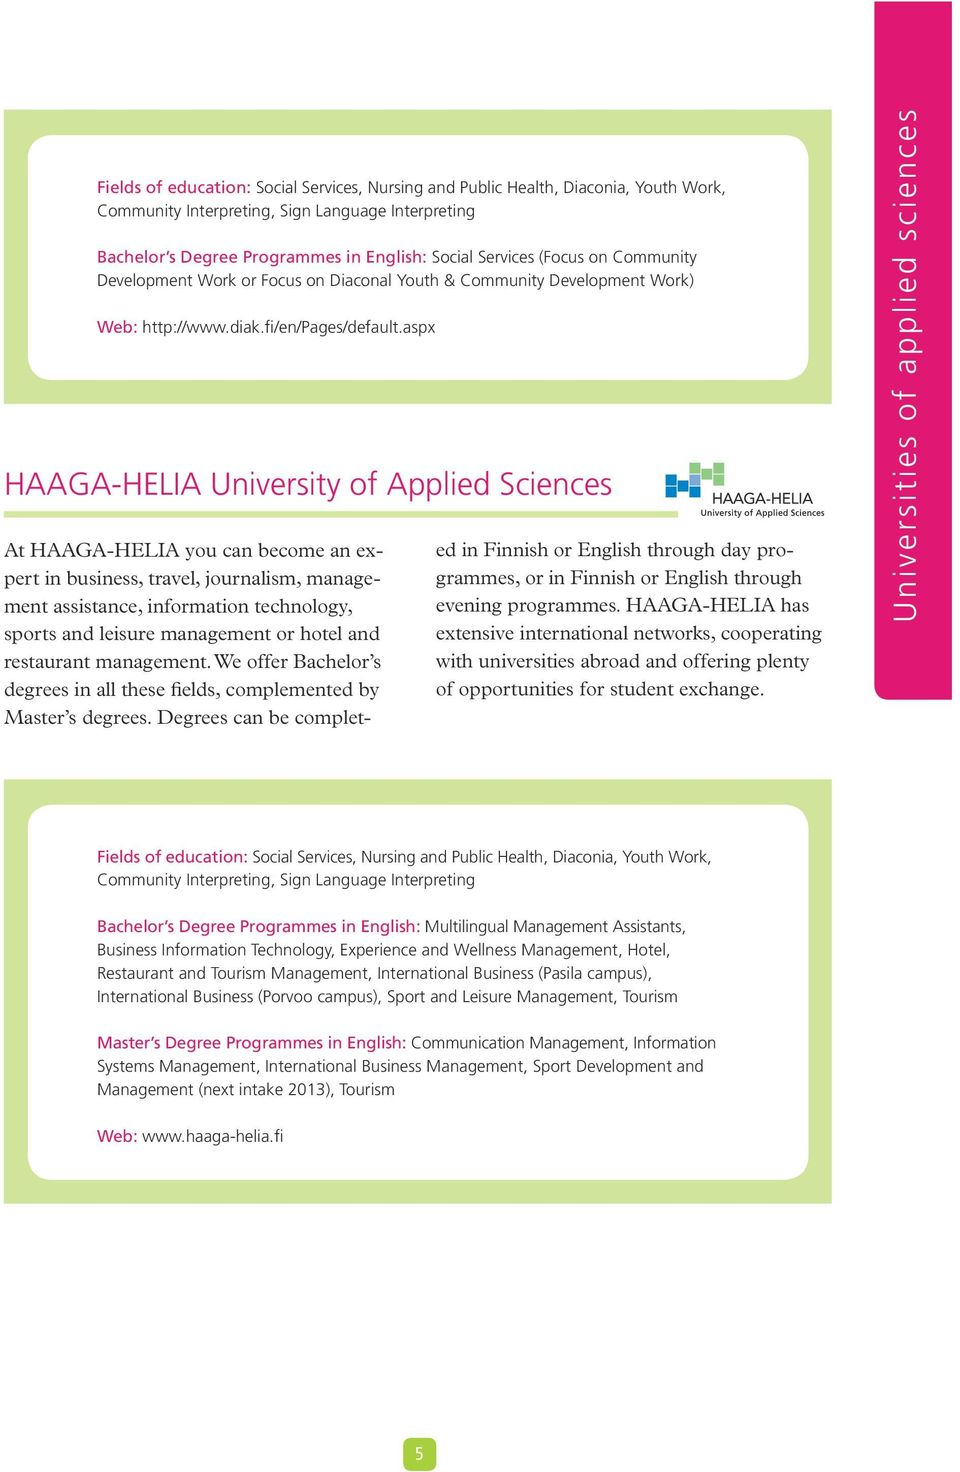 aspx HAAGA-HELIA University of Applied Sciences At HAAGA-HELIA you can become an expert in business, travel, journalism, management assistance, information technology, sports and leisure management